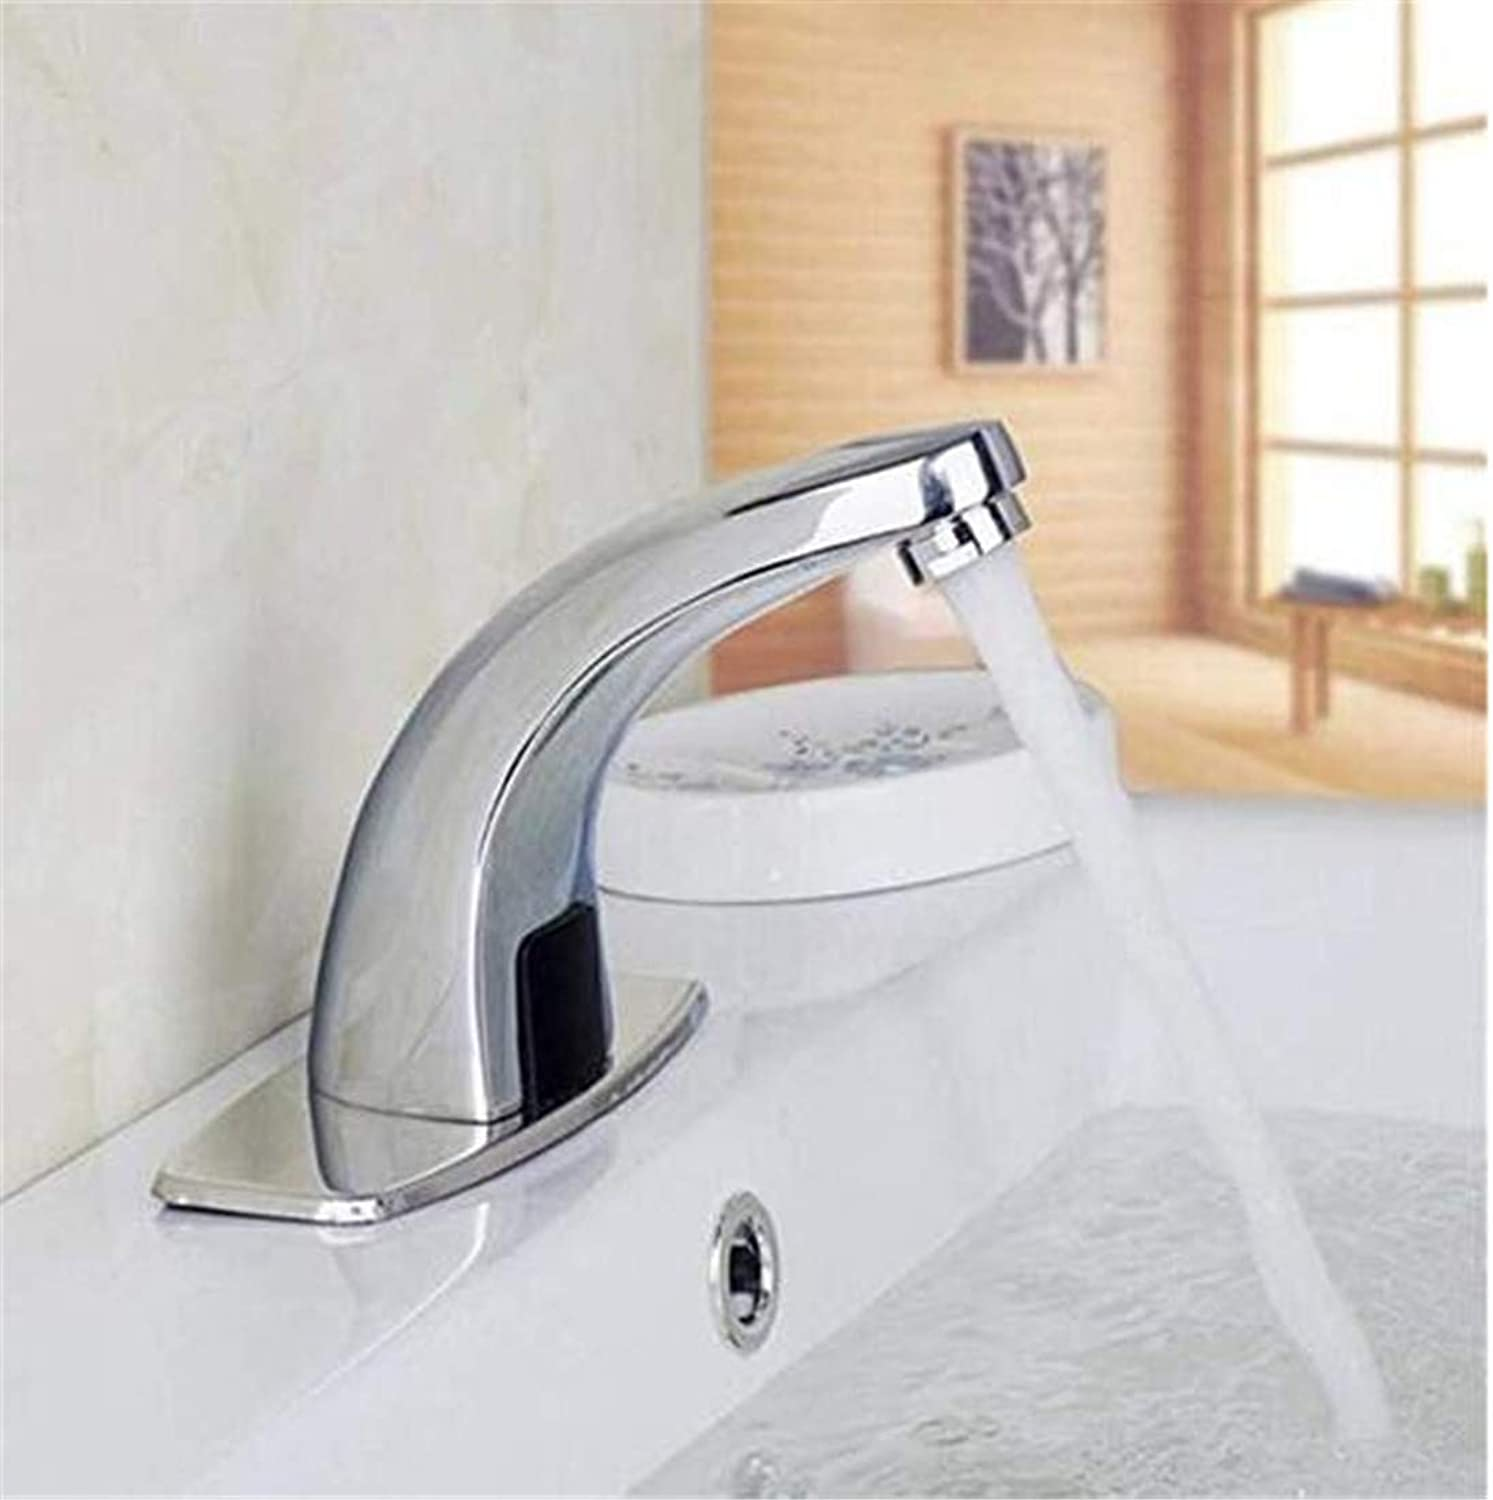 Modern Hot and Cold Faucet Vintage Platingfaucets Basin Mixer New Brass Chrome Single Handle Cold and Hot Water Mixer Tap